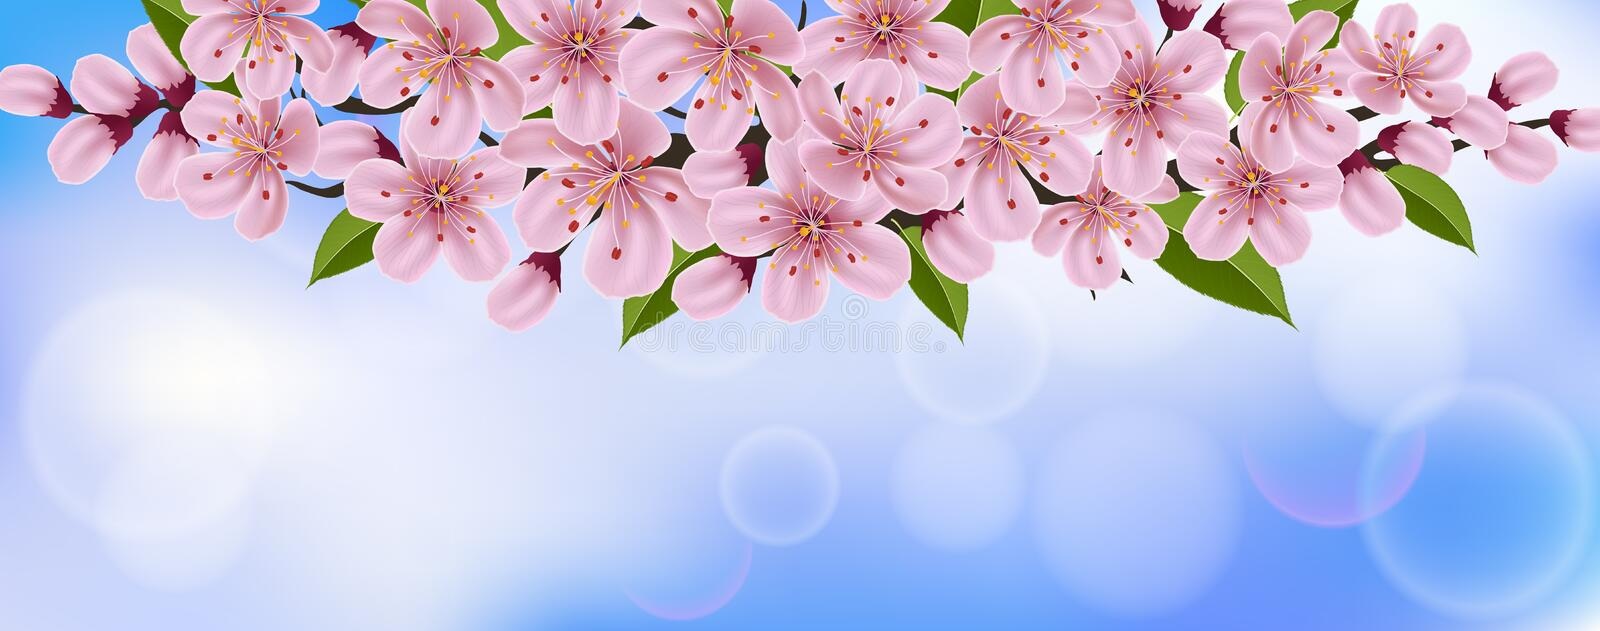 Horizontal spring background with pink cherry flowers and branch stock illustration